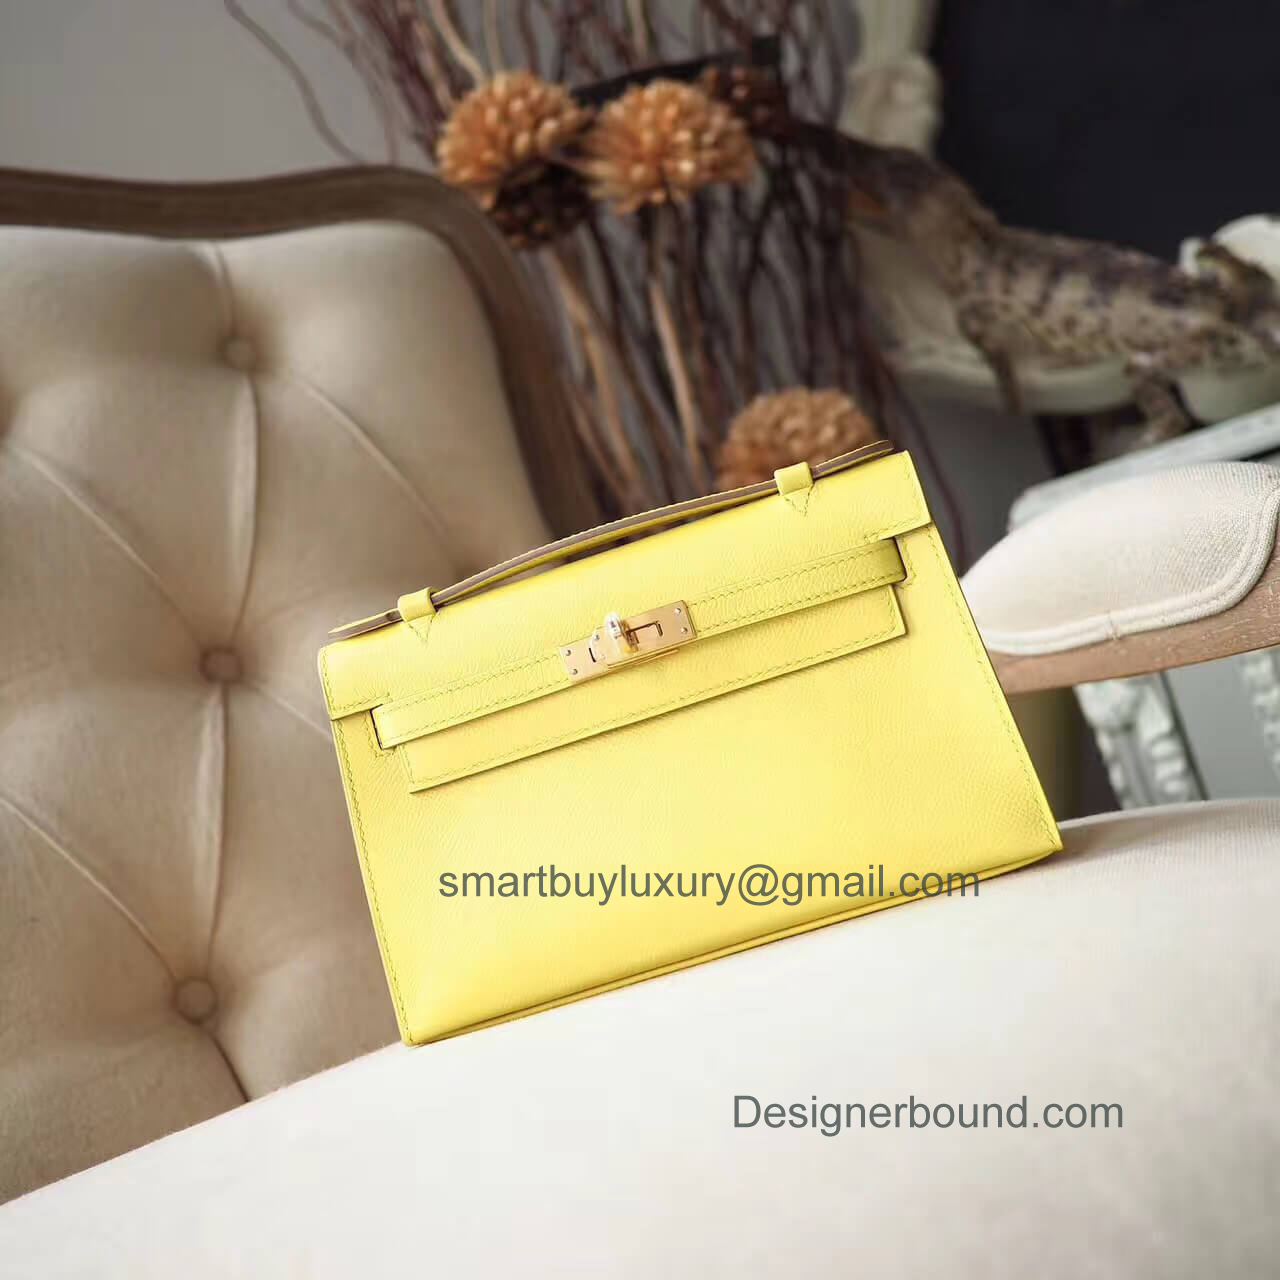 Hermes Mini Kelly 22 Pochette Bag in c9 Foufre Epsom GHW